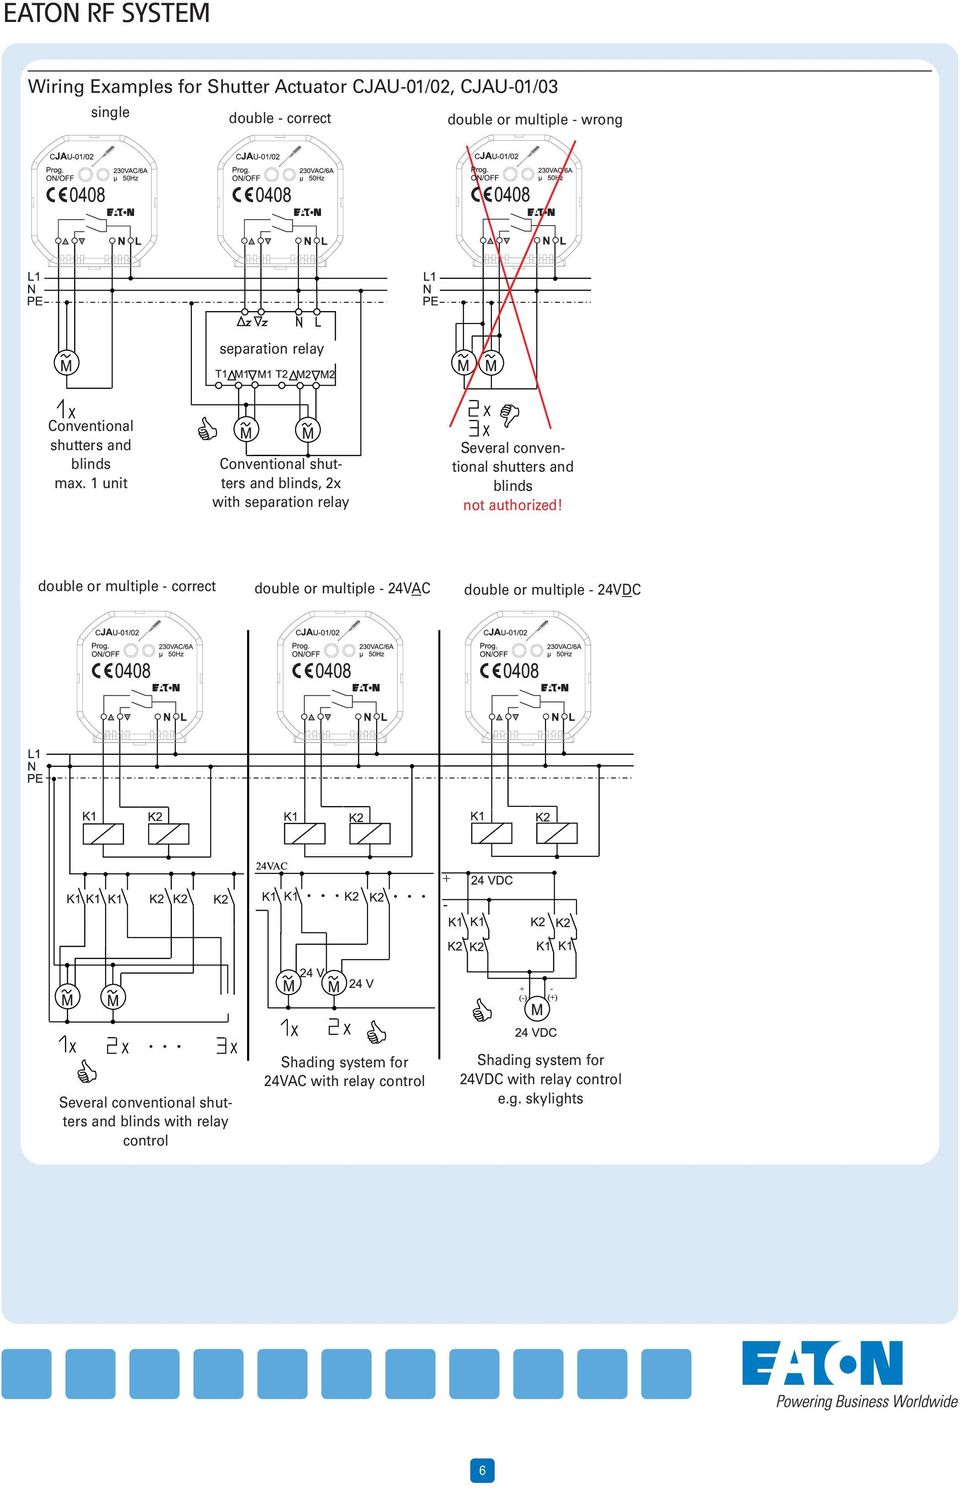 Technical Specifications Eaton Rf System Wiring Examples Page Xx Use A Relay Or Smart Switch With The 45 Watt Higher Halogen Lights 1 Unit Conventional Shutters And Blinds 2x Separation Several